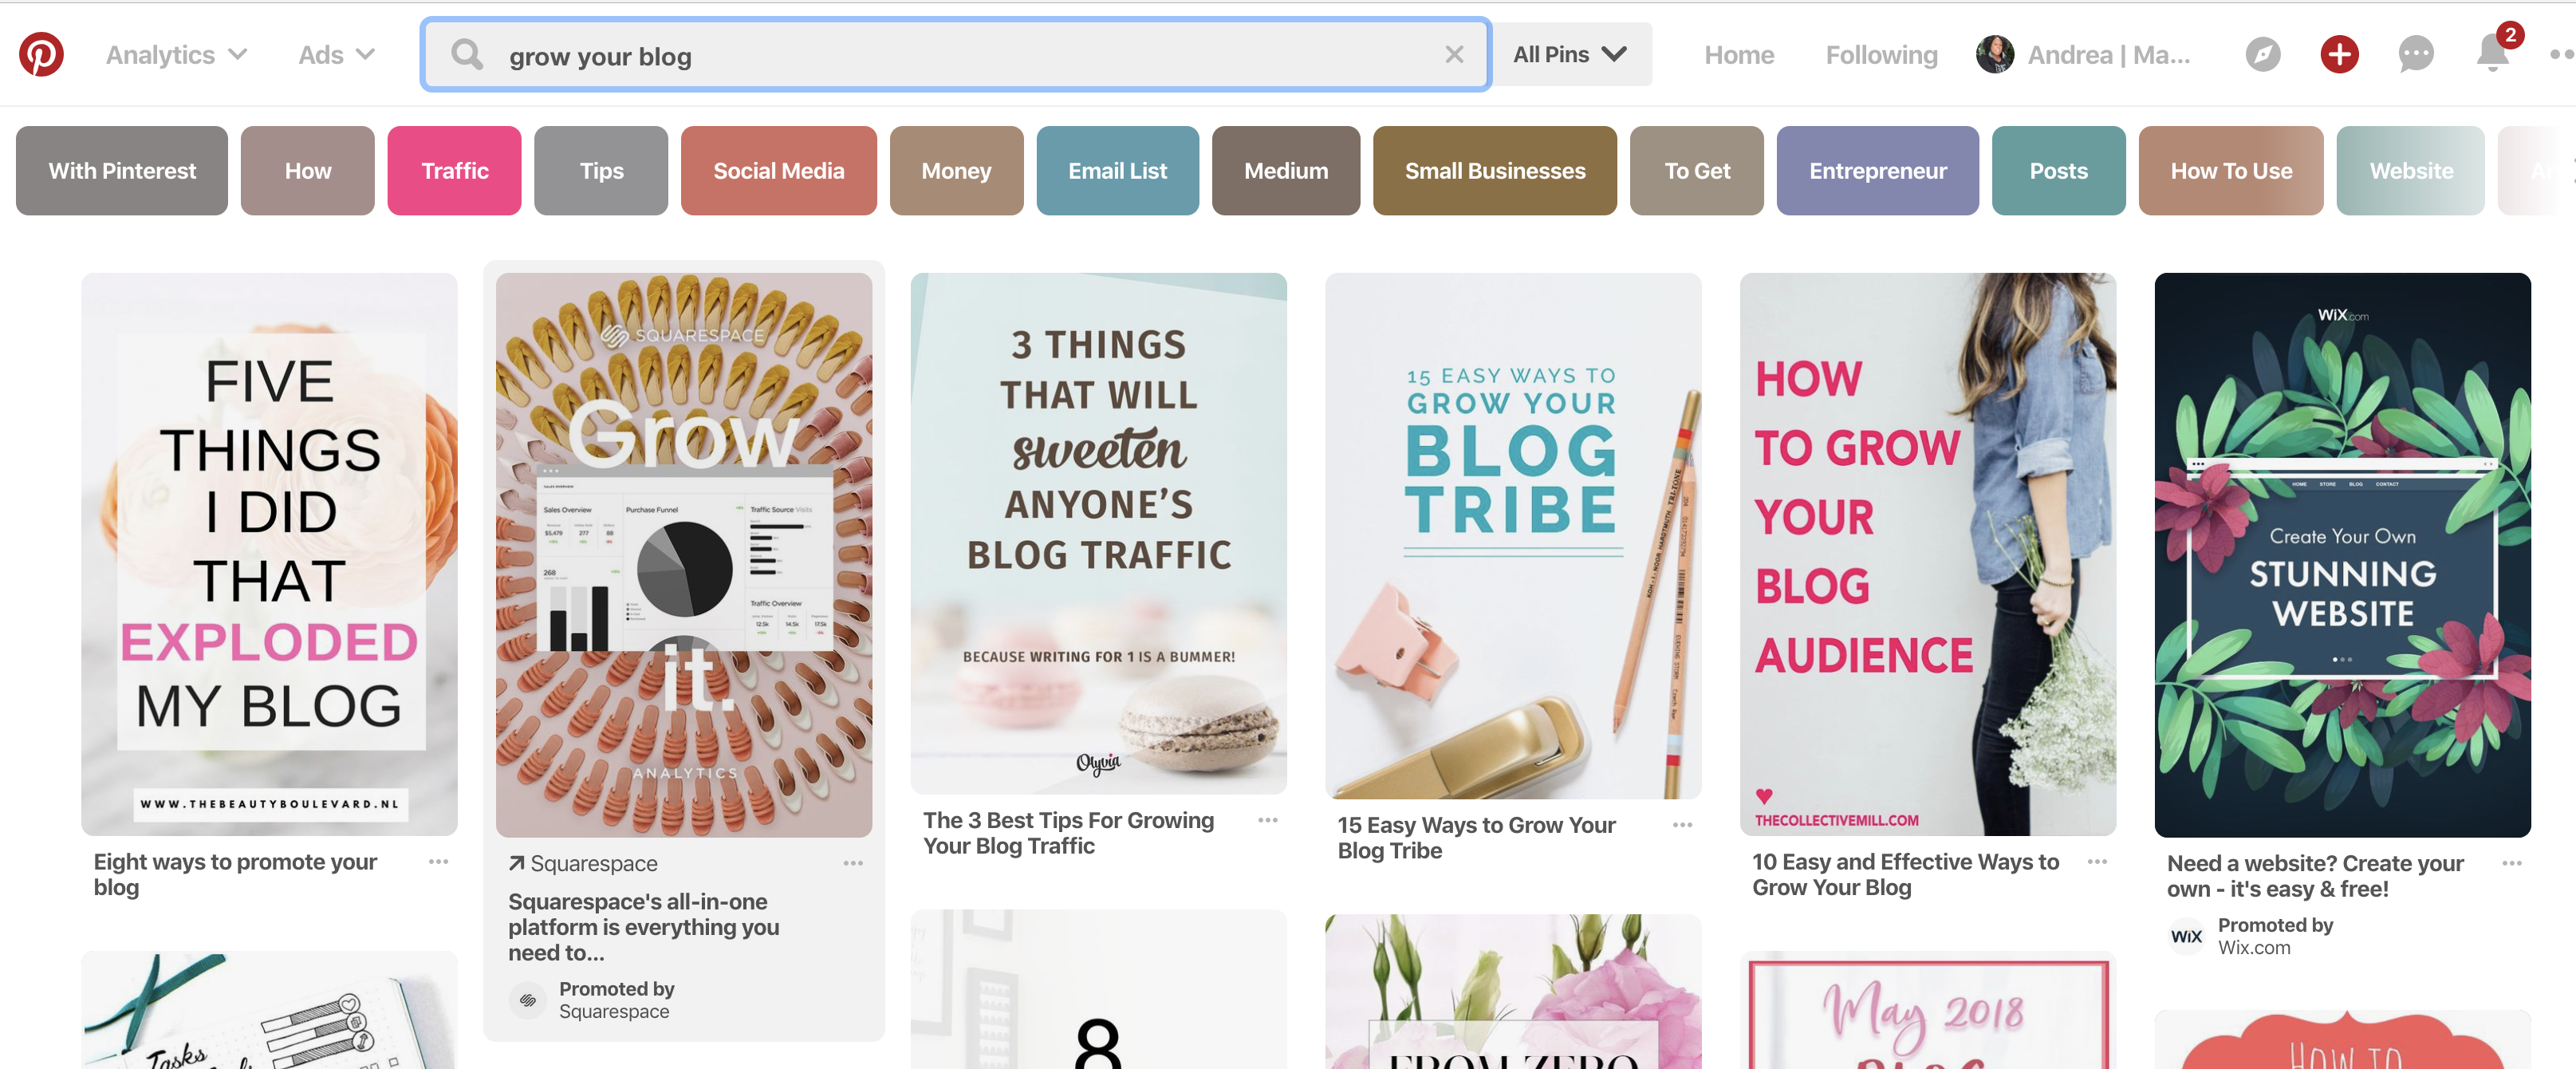 GROW YOUR BLOG TRAFFIC WITH THESE GOOGLE + PINTEREST SEO HACKS